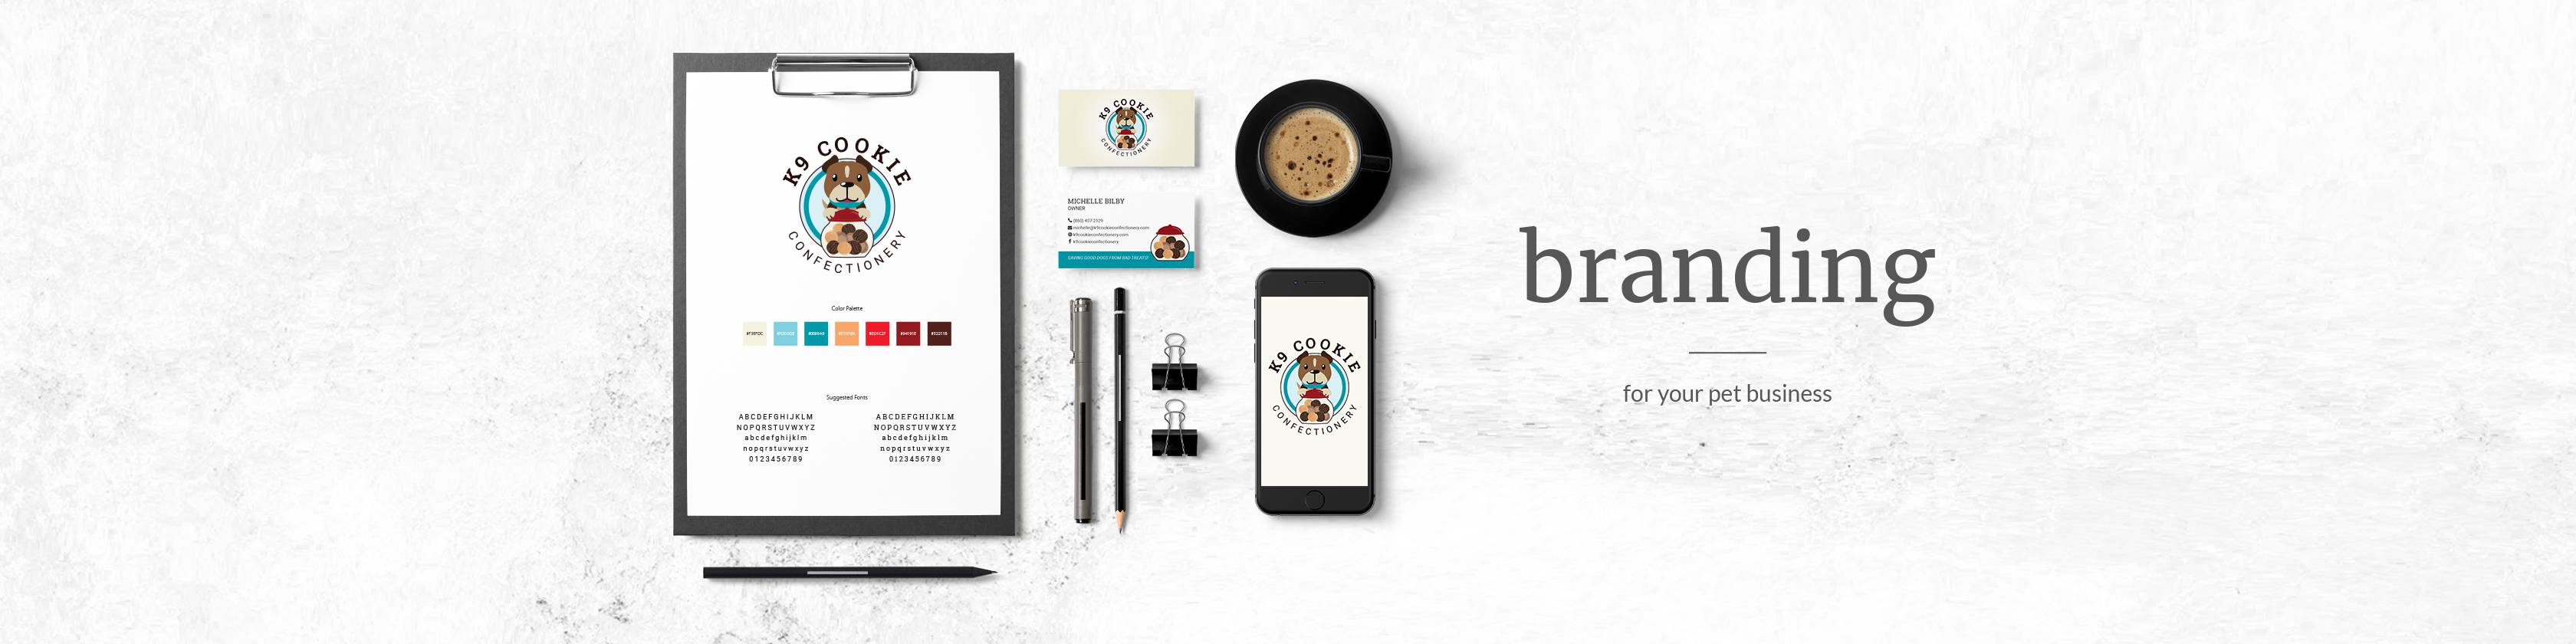 Ink and Byte - Branding, Pet Portraits, Home & Lifestyle Items